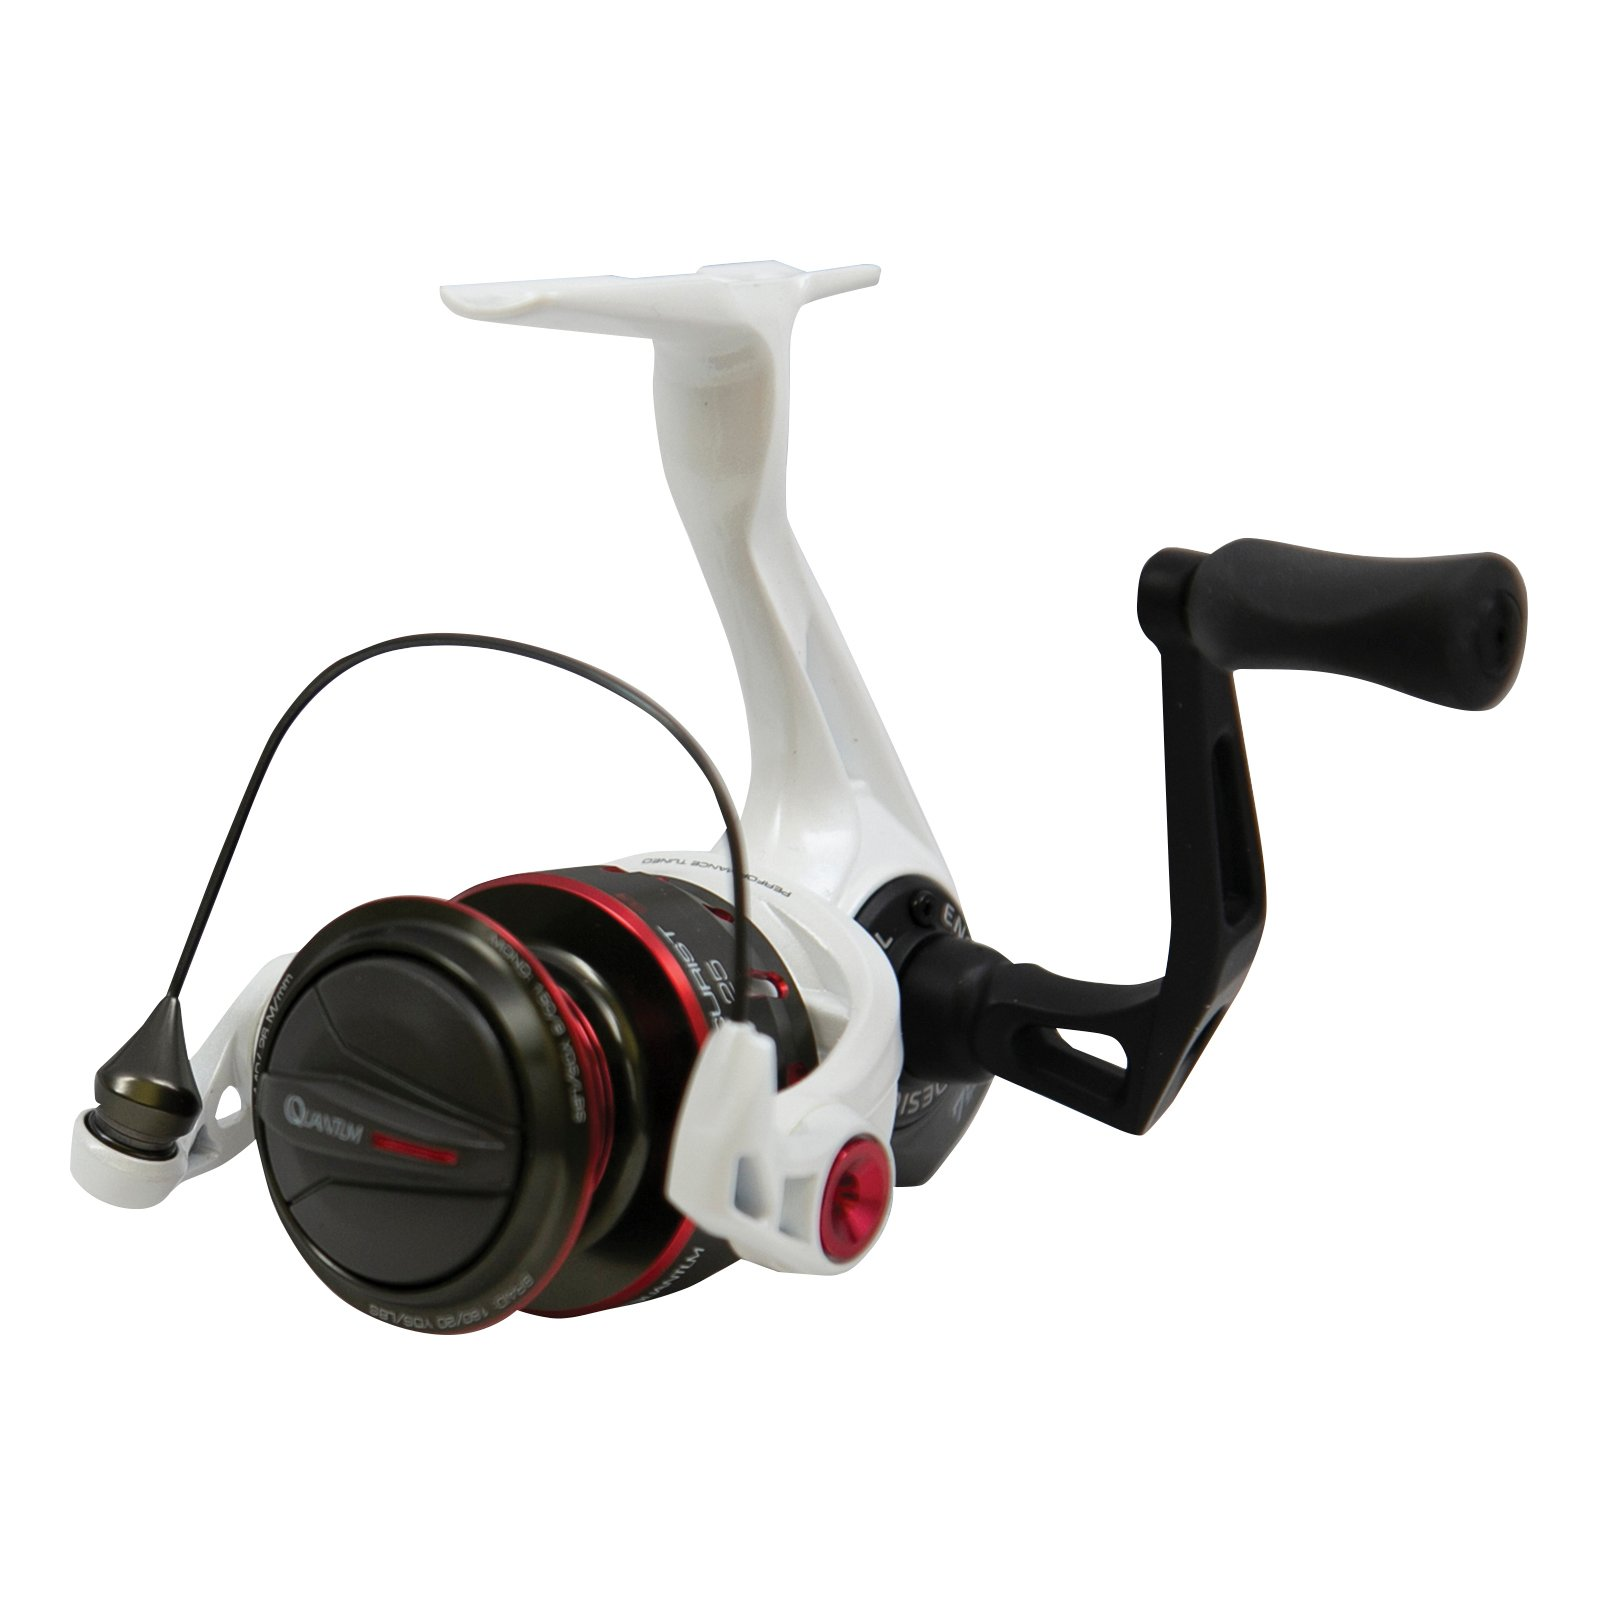 Quantum Accurist S3 PT Spinning Reel